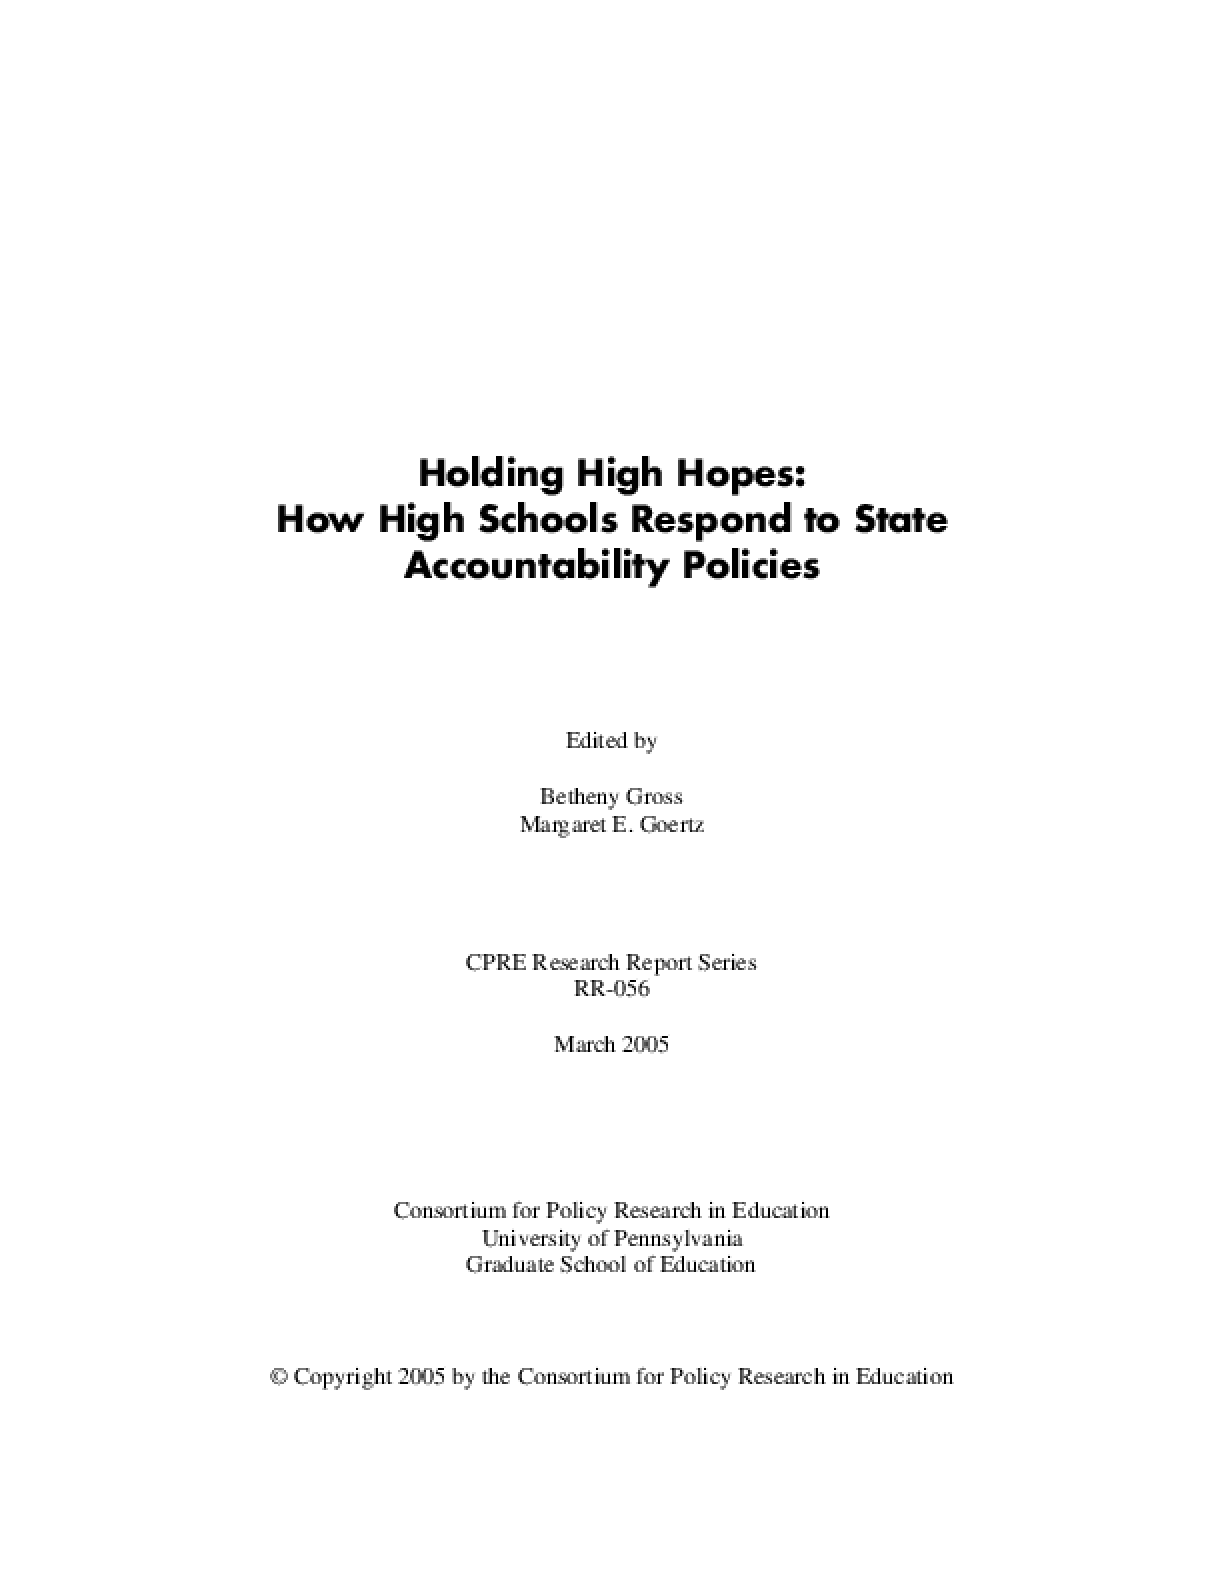 High Hopes: How High Schools Respond to State Accountability Policies